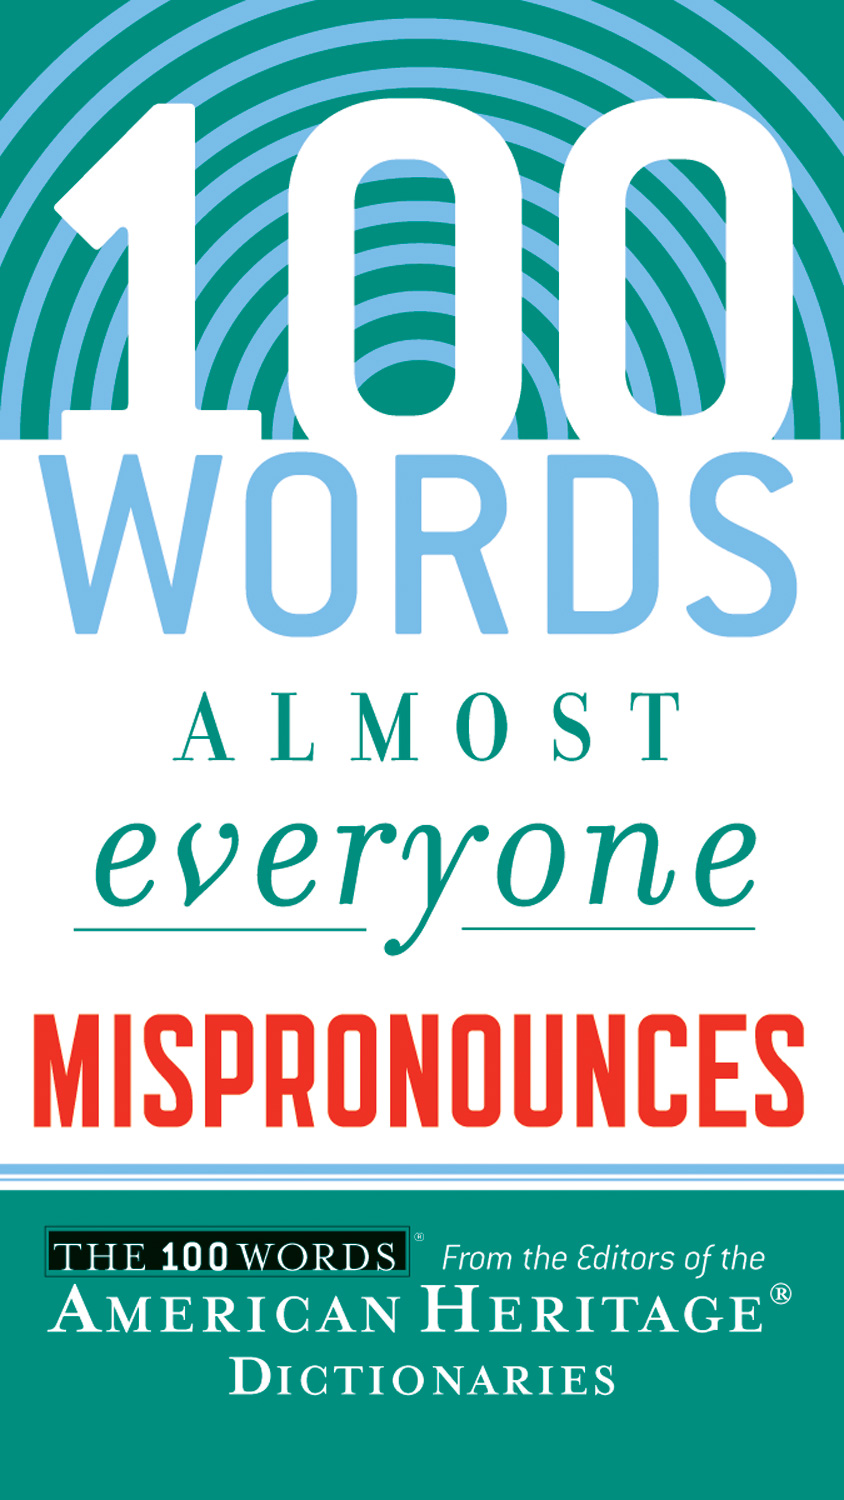 100 Words Almost Everyone Mispronounces-9780547148113